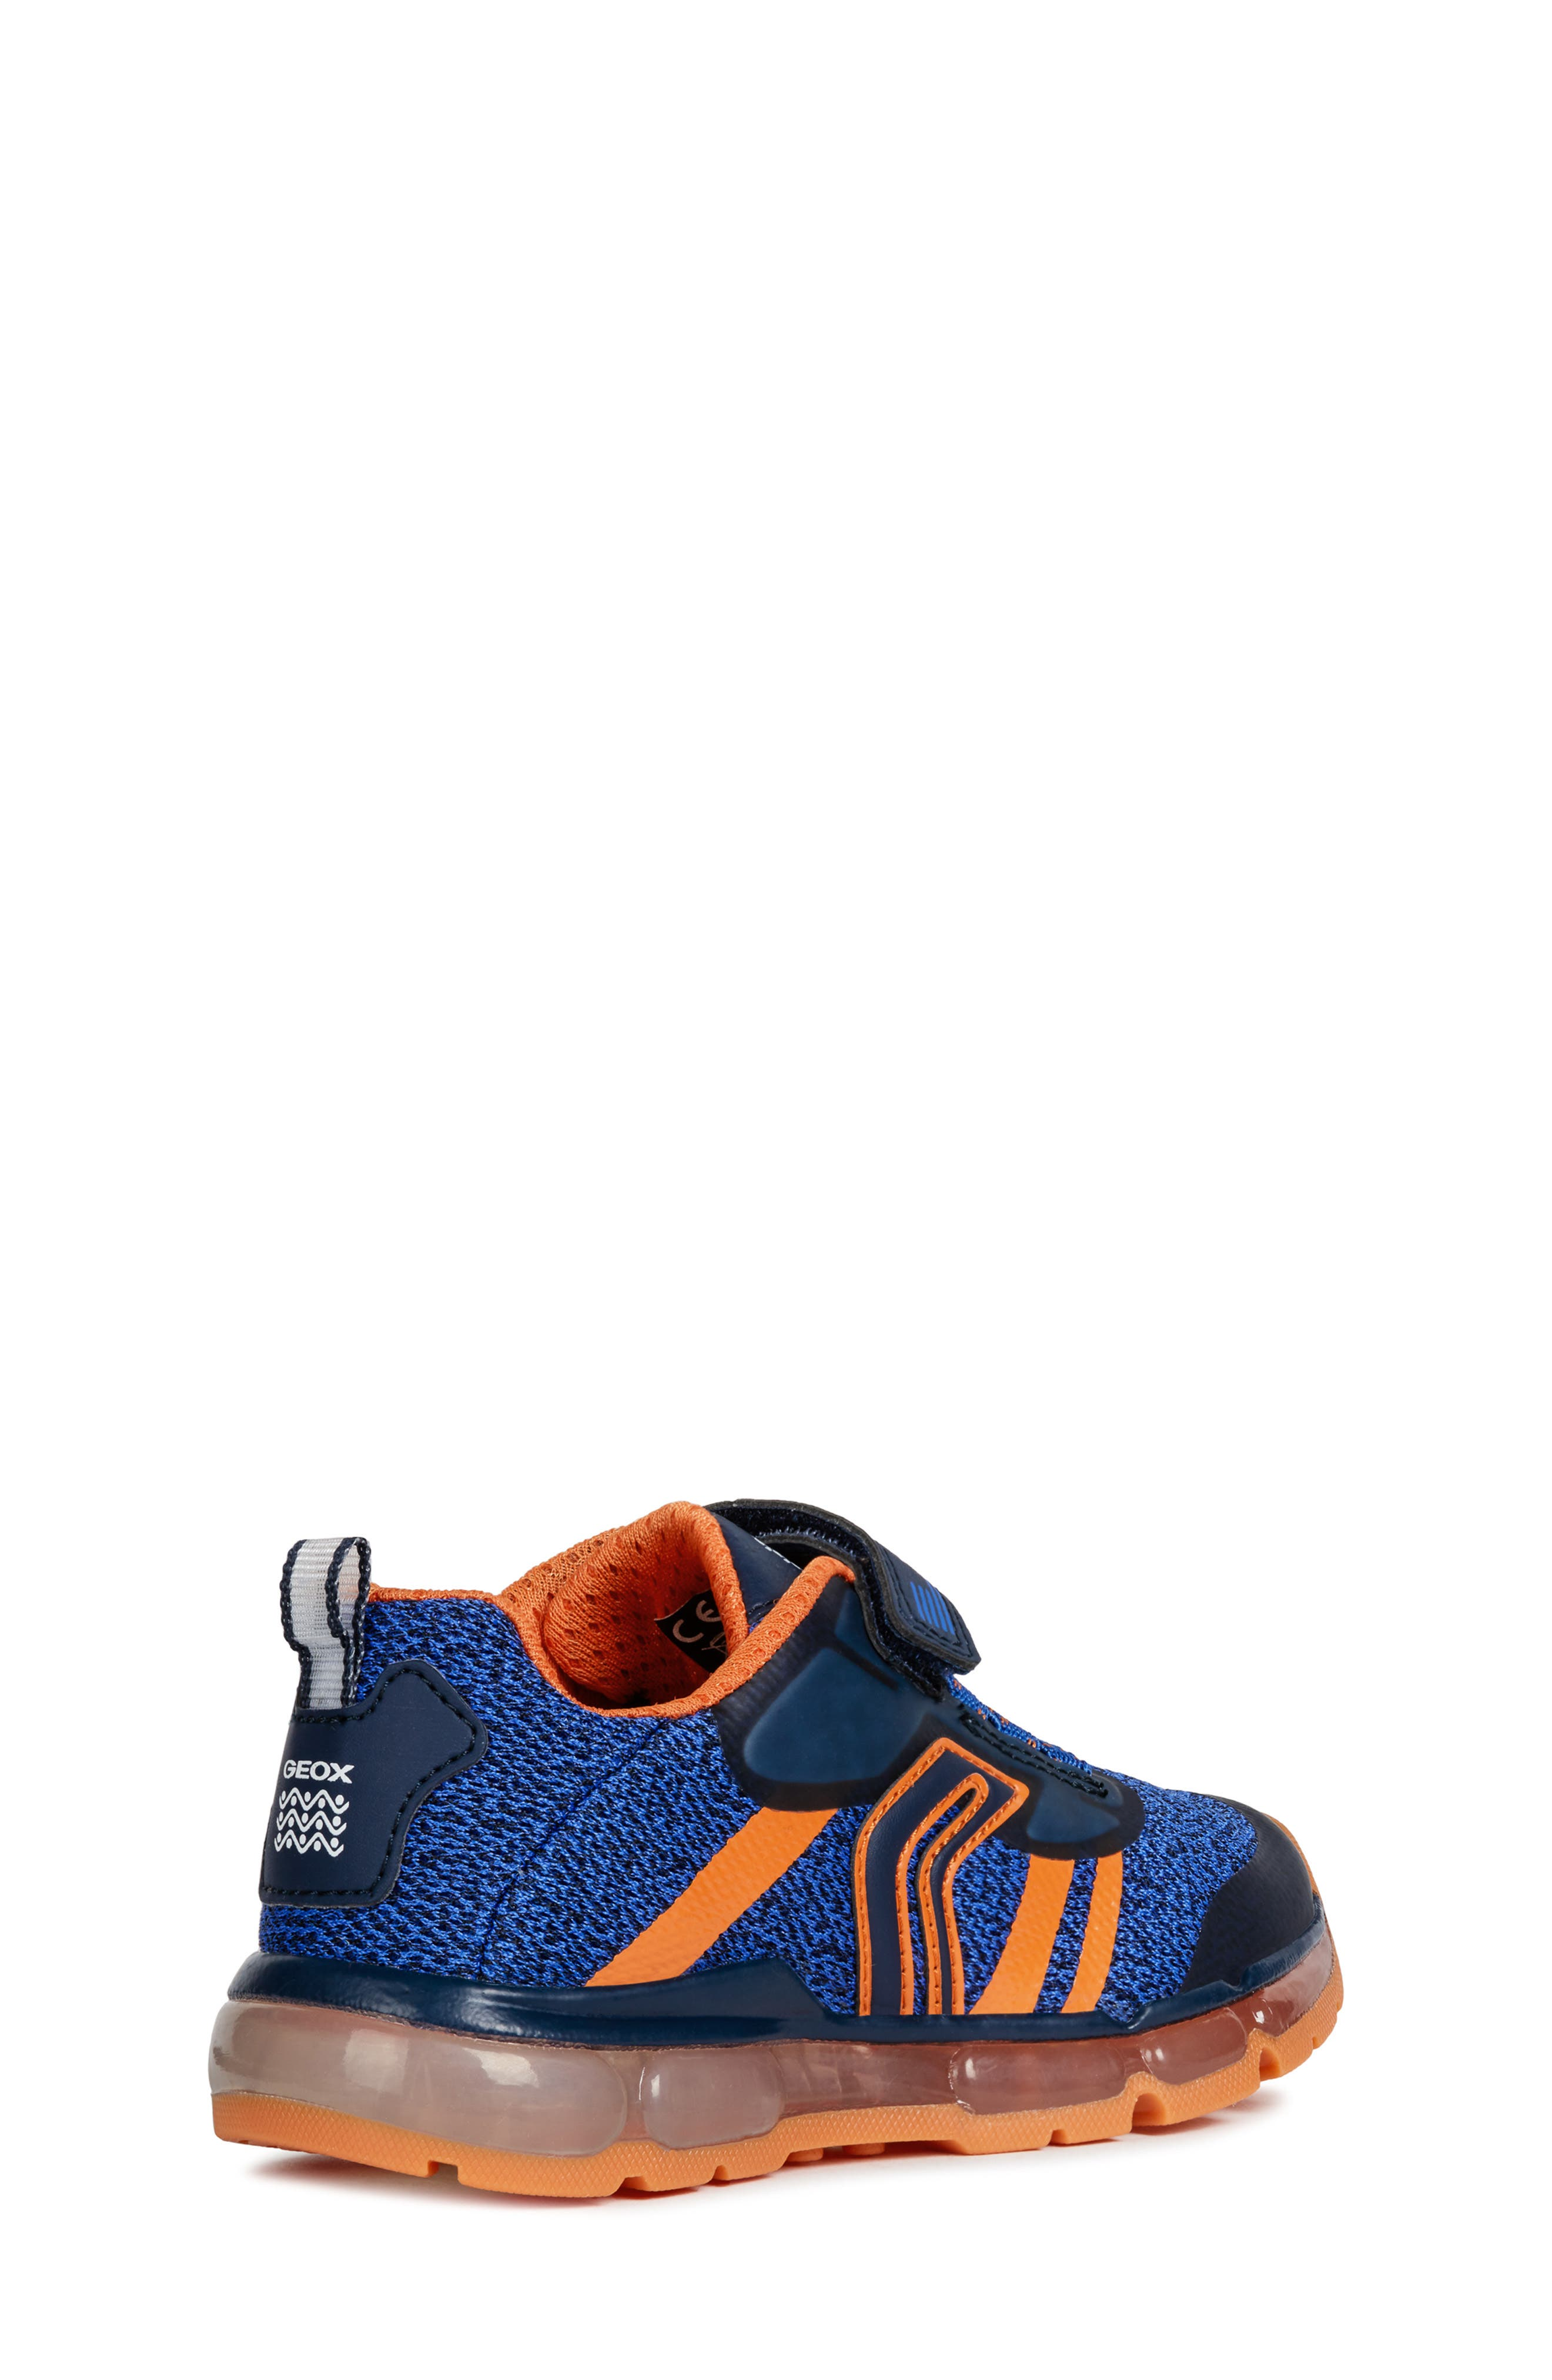 GEOX, Android 19 Light-Up Sneaker, Alternate thumbnail 7, color, NAVY/ ORANGE